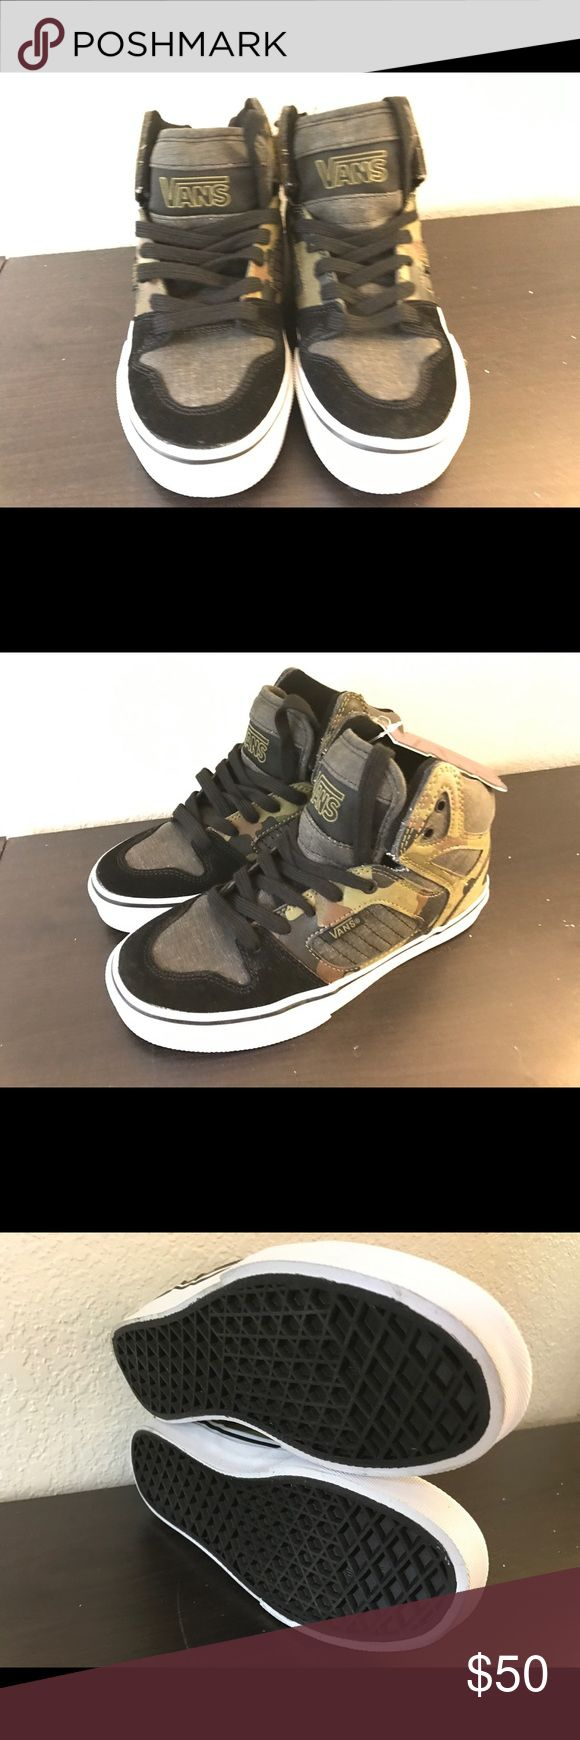 Boys Vans Camo High Tops, 2.5 Stylish Camo high top - perfect for the adventurous and fun loving kid Vans Shoes Sneakers